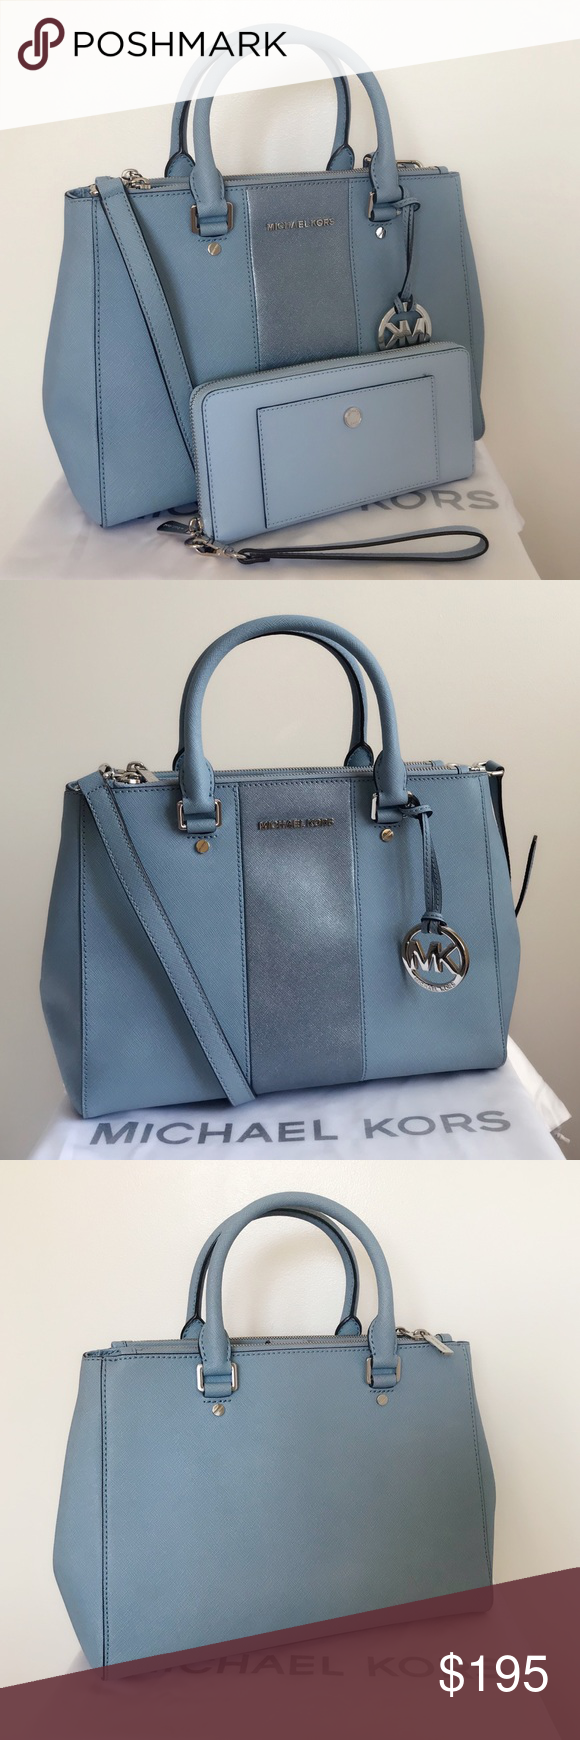 60d686e4dce1 Spotted while shopping on Poshmark: Michael Kors Sutton Satchel And Wallet!  #poshmark #fashion #shopping #style #Michael Kors #Handbags